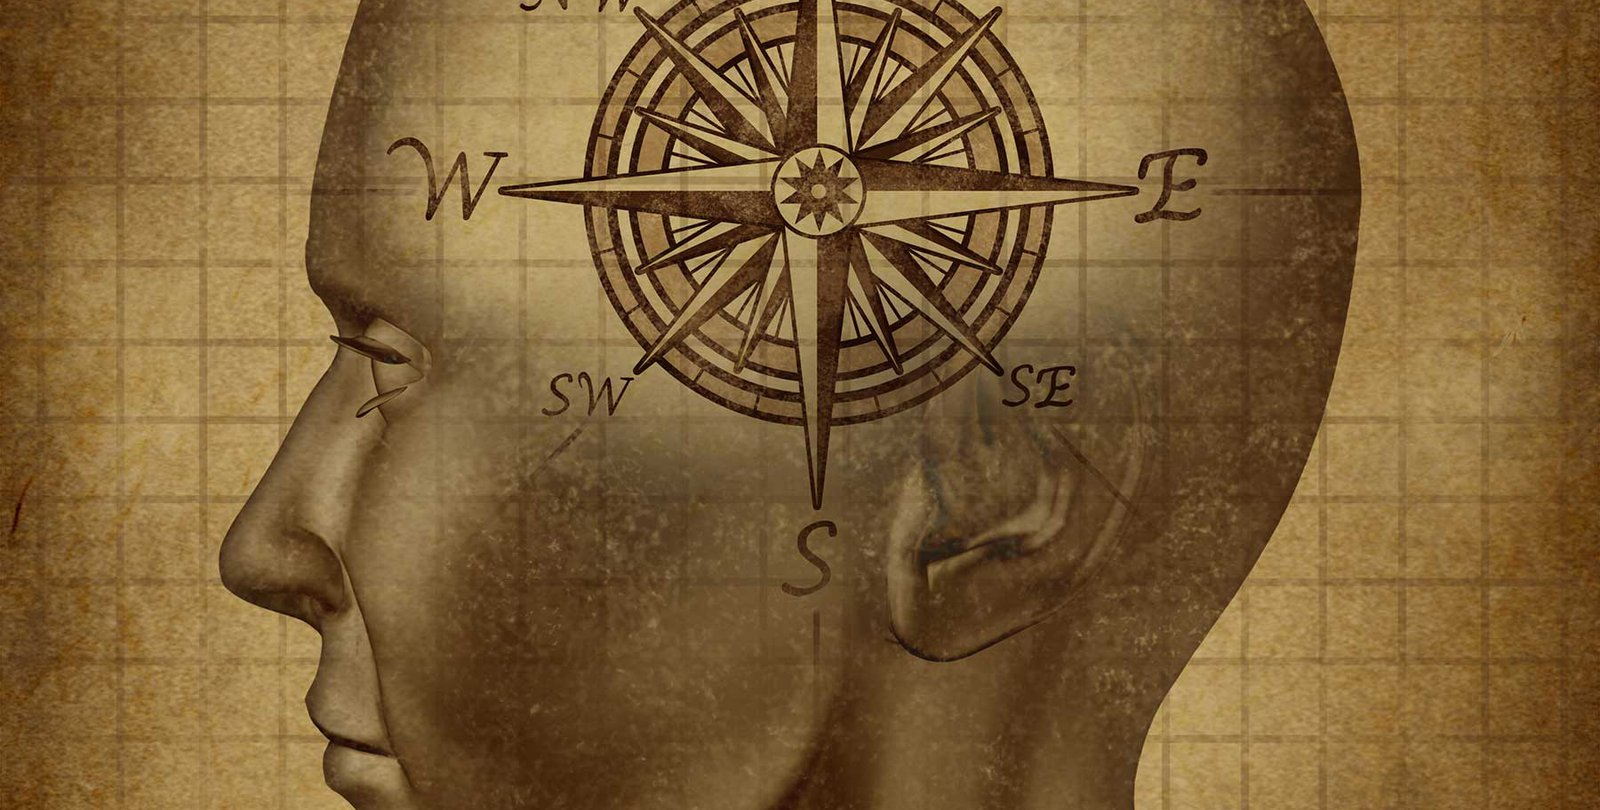 An illustration of a human with a compass superimposed